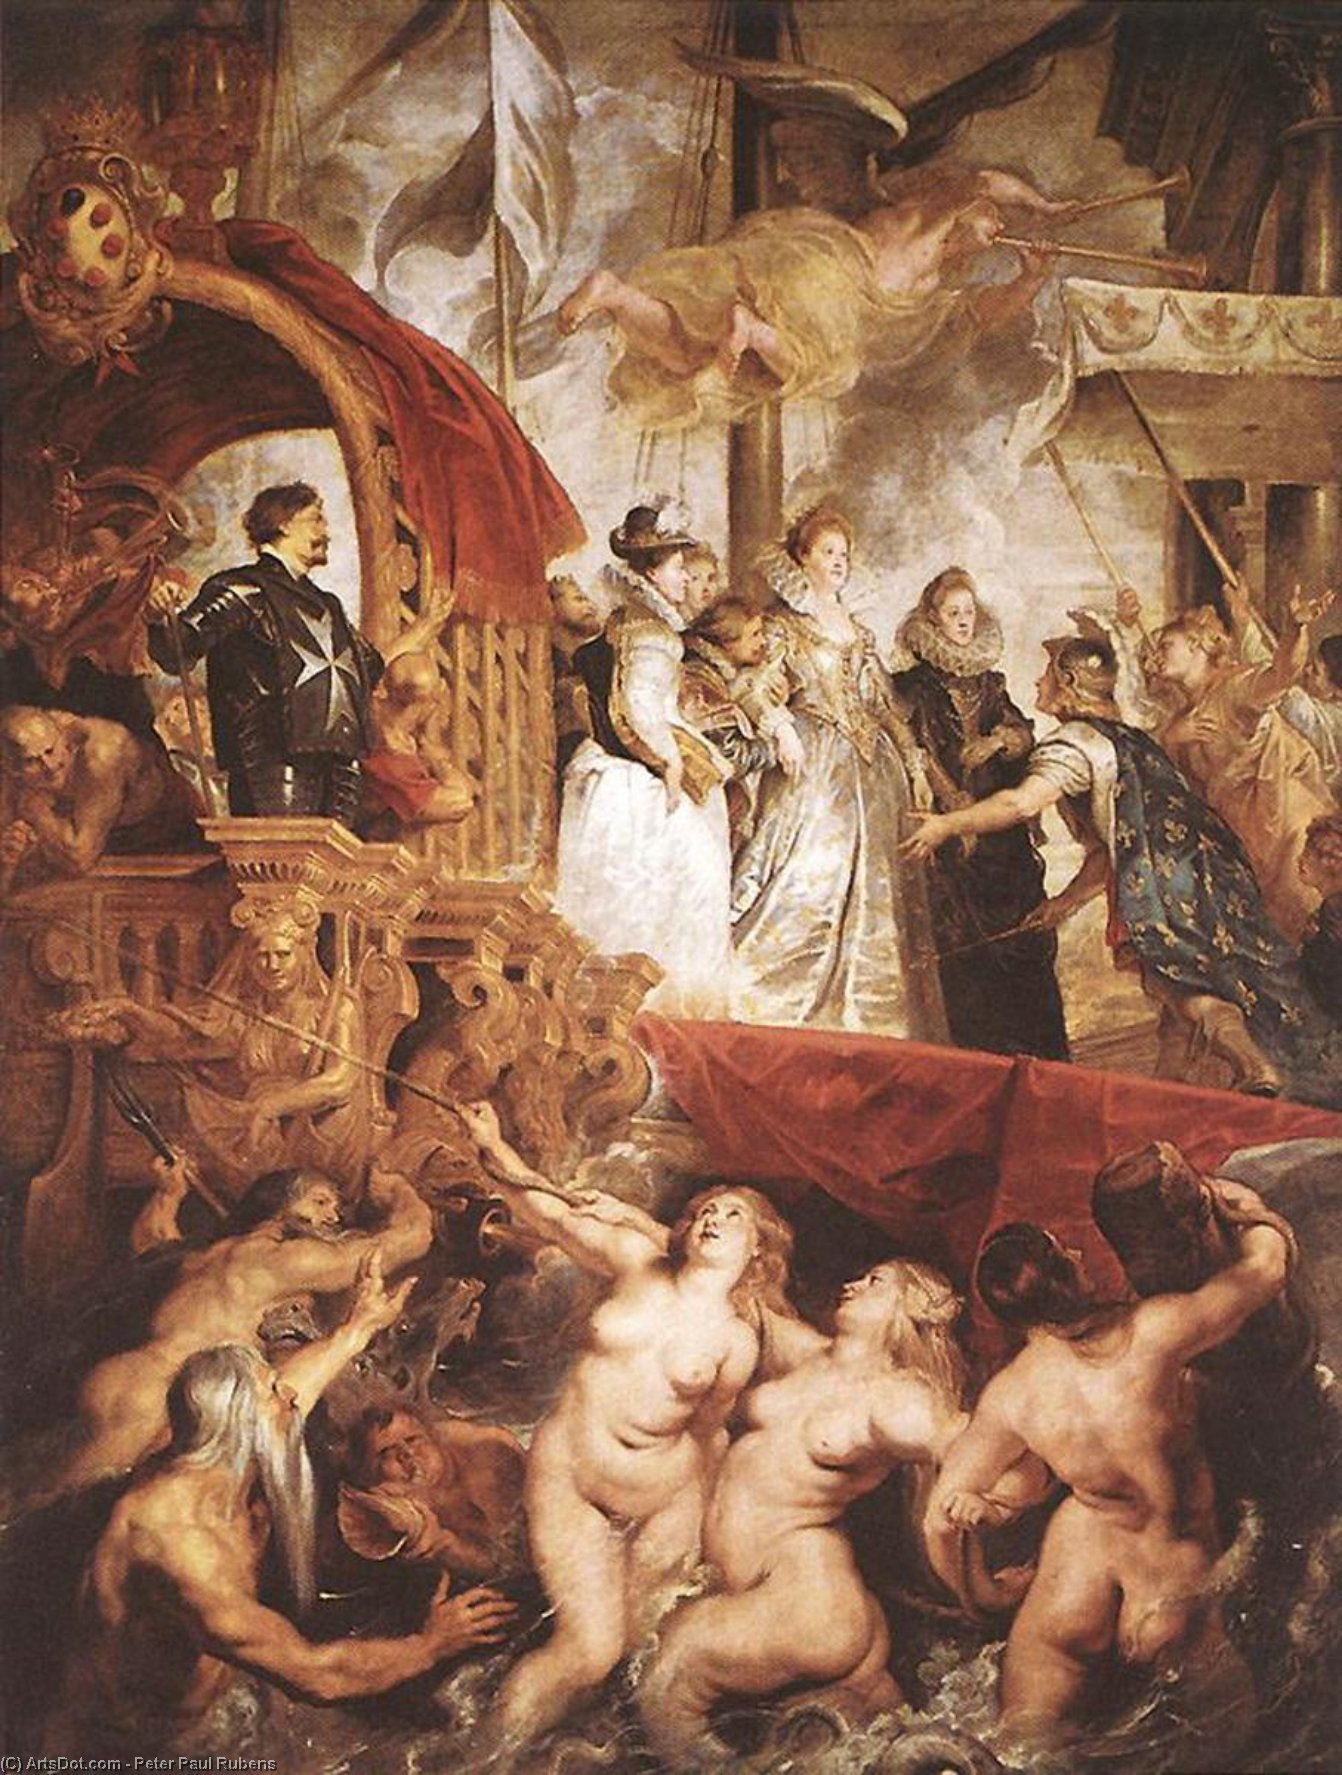 Wikioo.org - The Encyclopedia of Fine Arts - Painting, Artwork by Peter Paul Rubens - The Landing of Marie de Medici at Marseilles